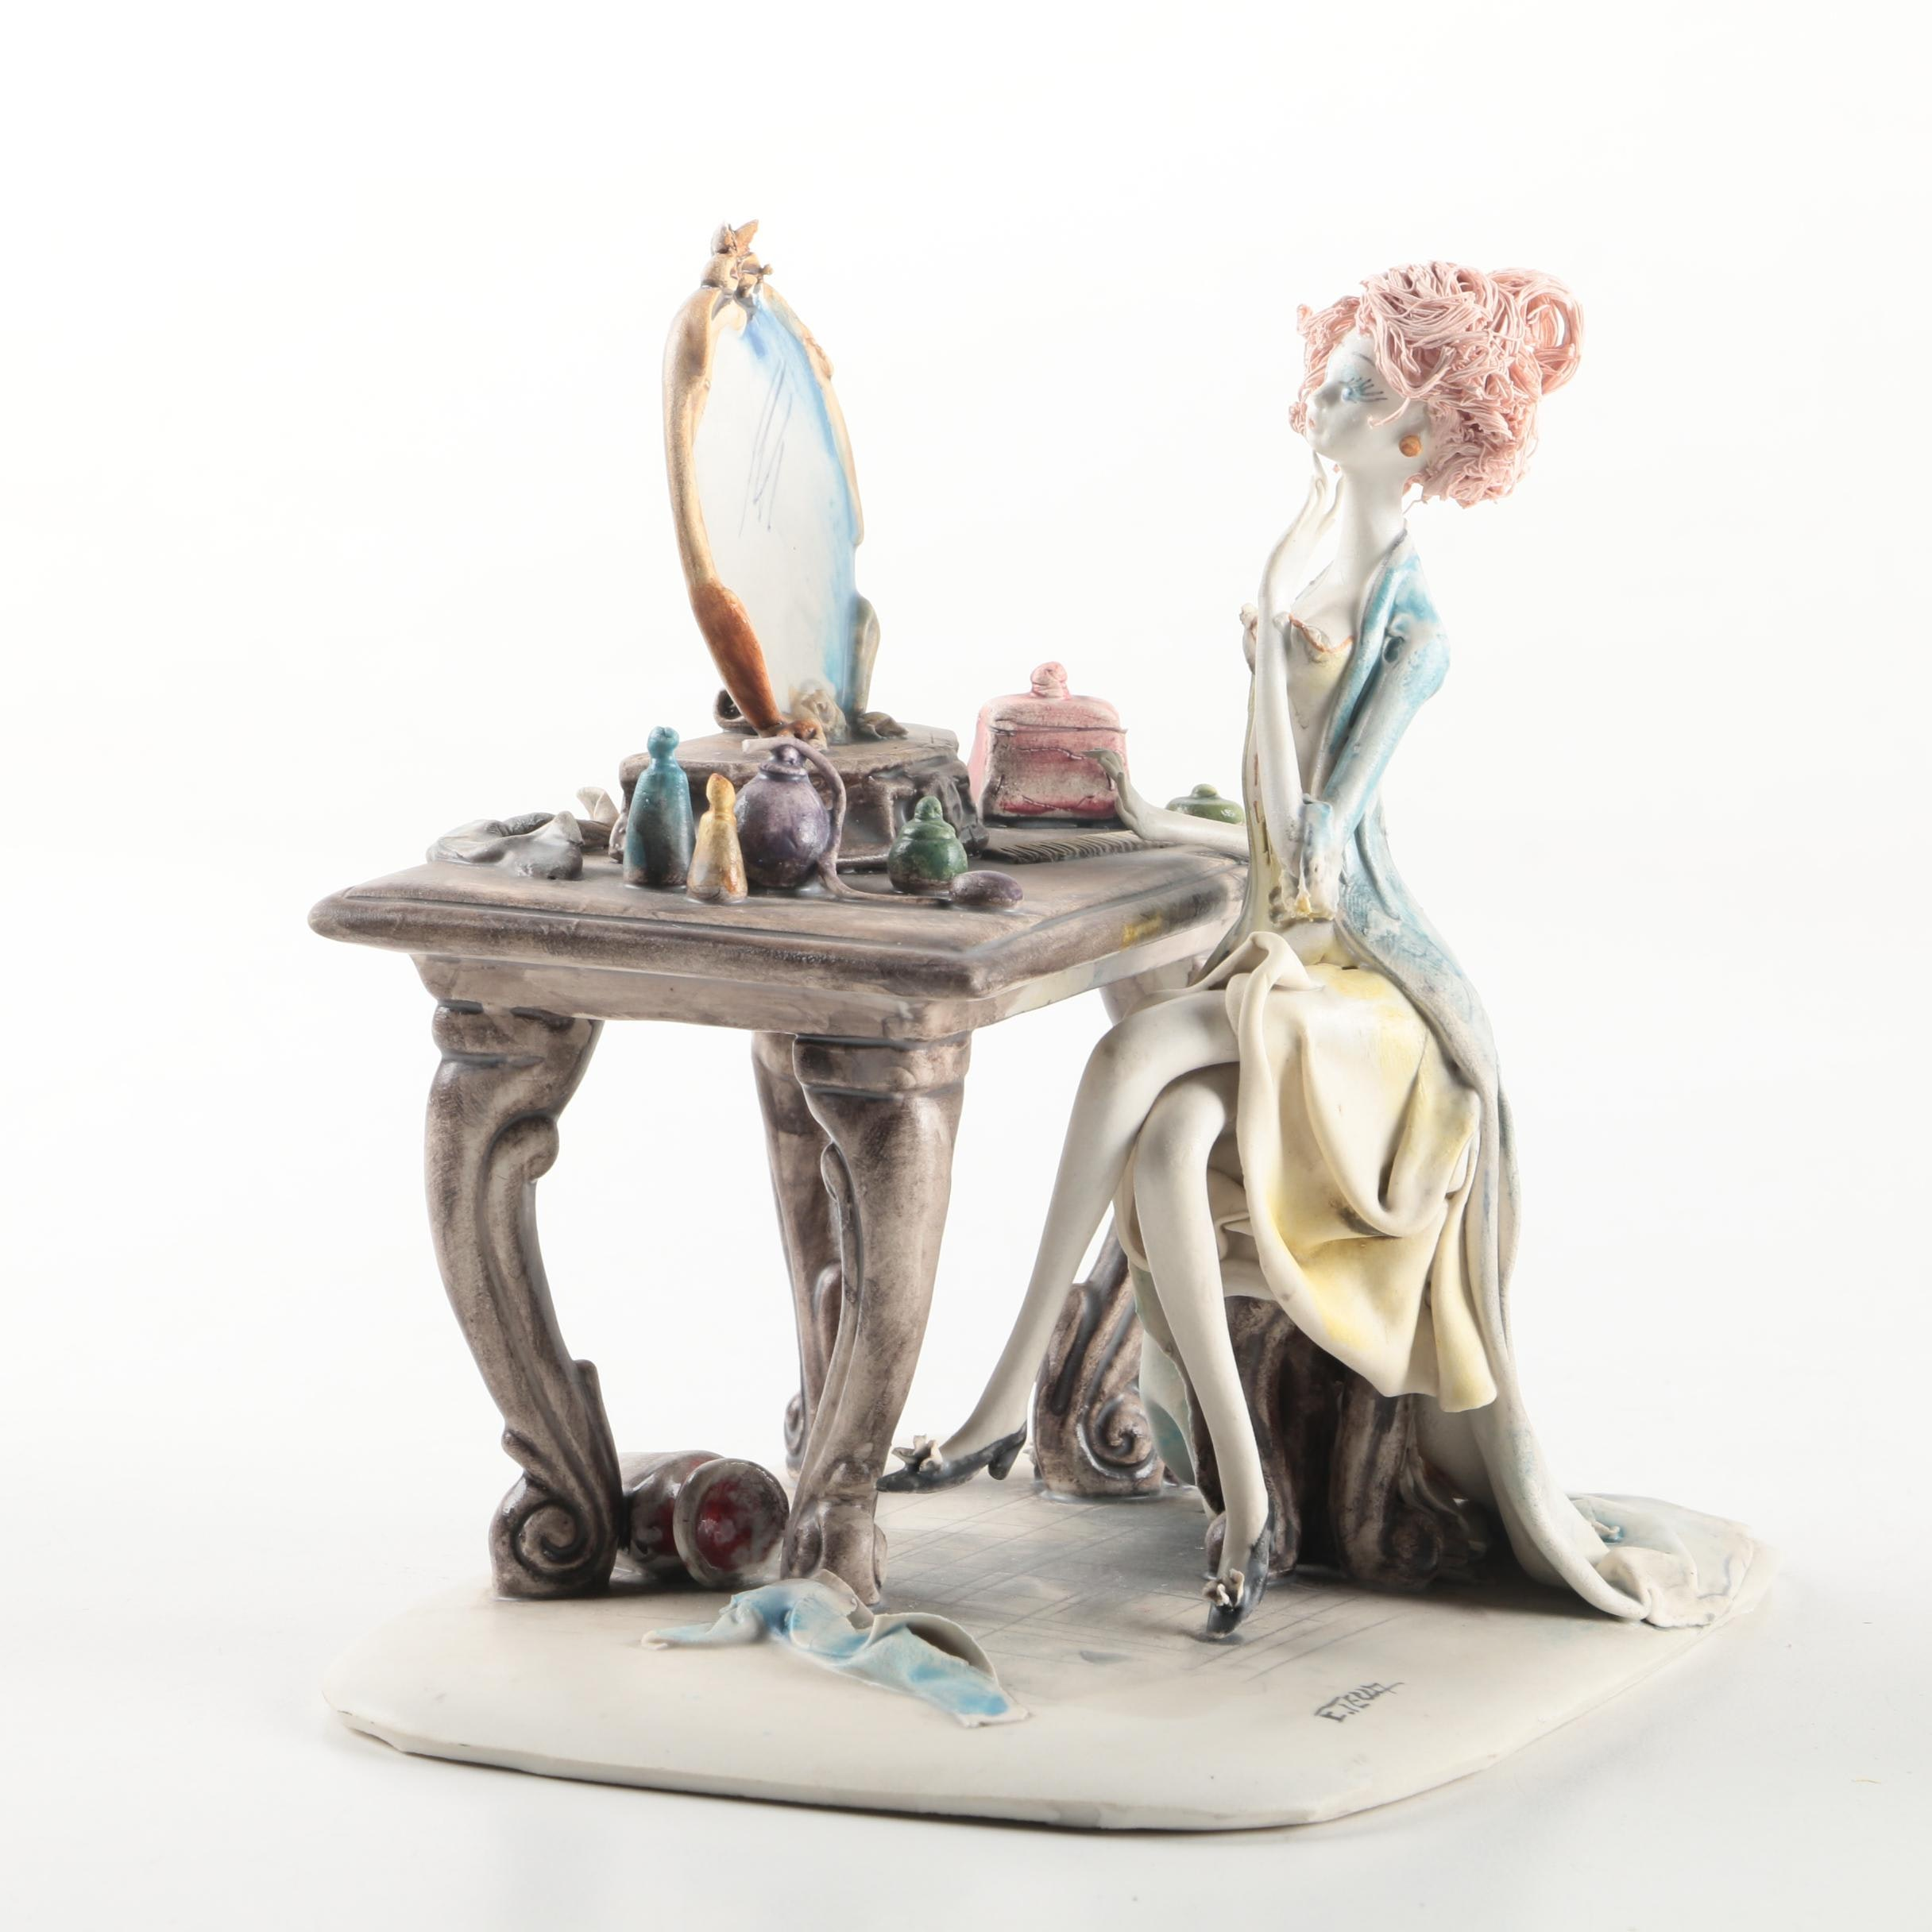 E. Tezza Porcelain Figurine of a Lady Sitting at Her Mirror